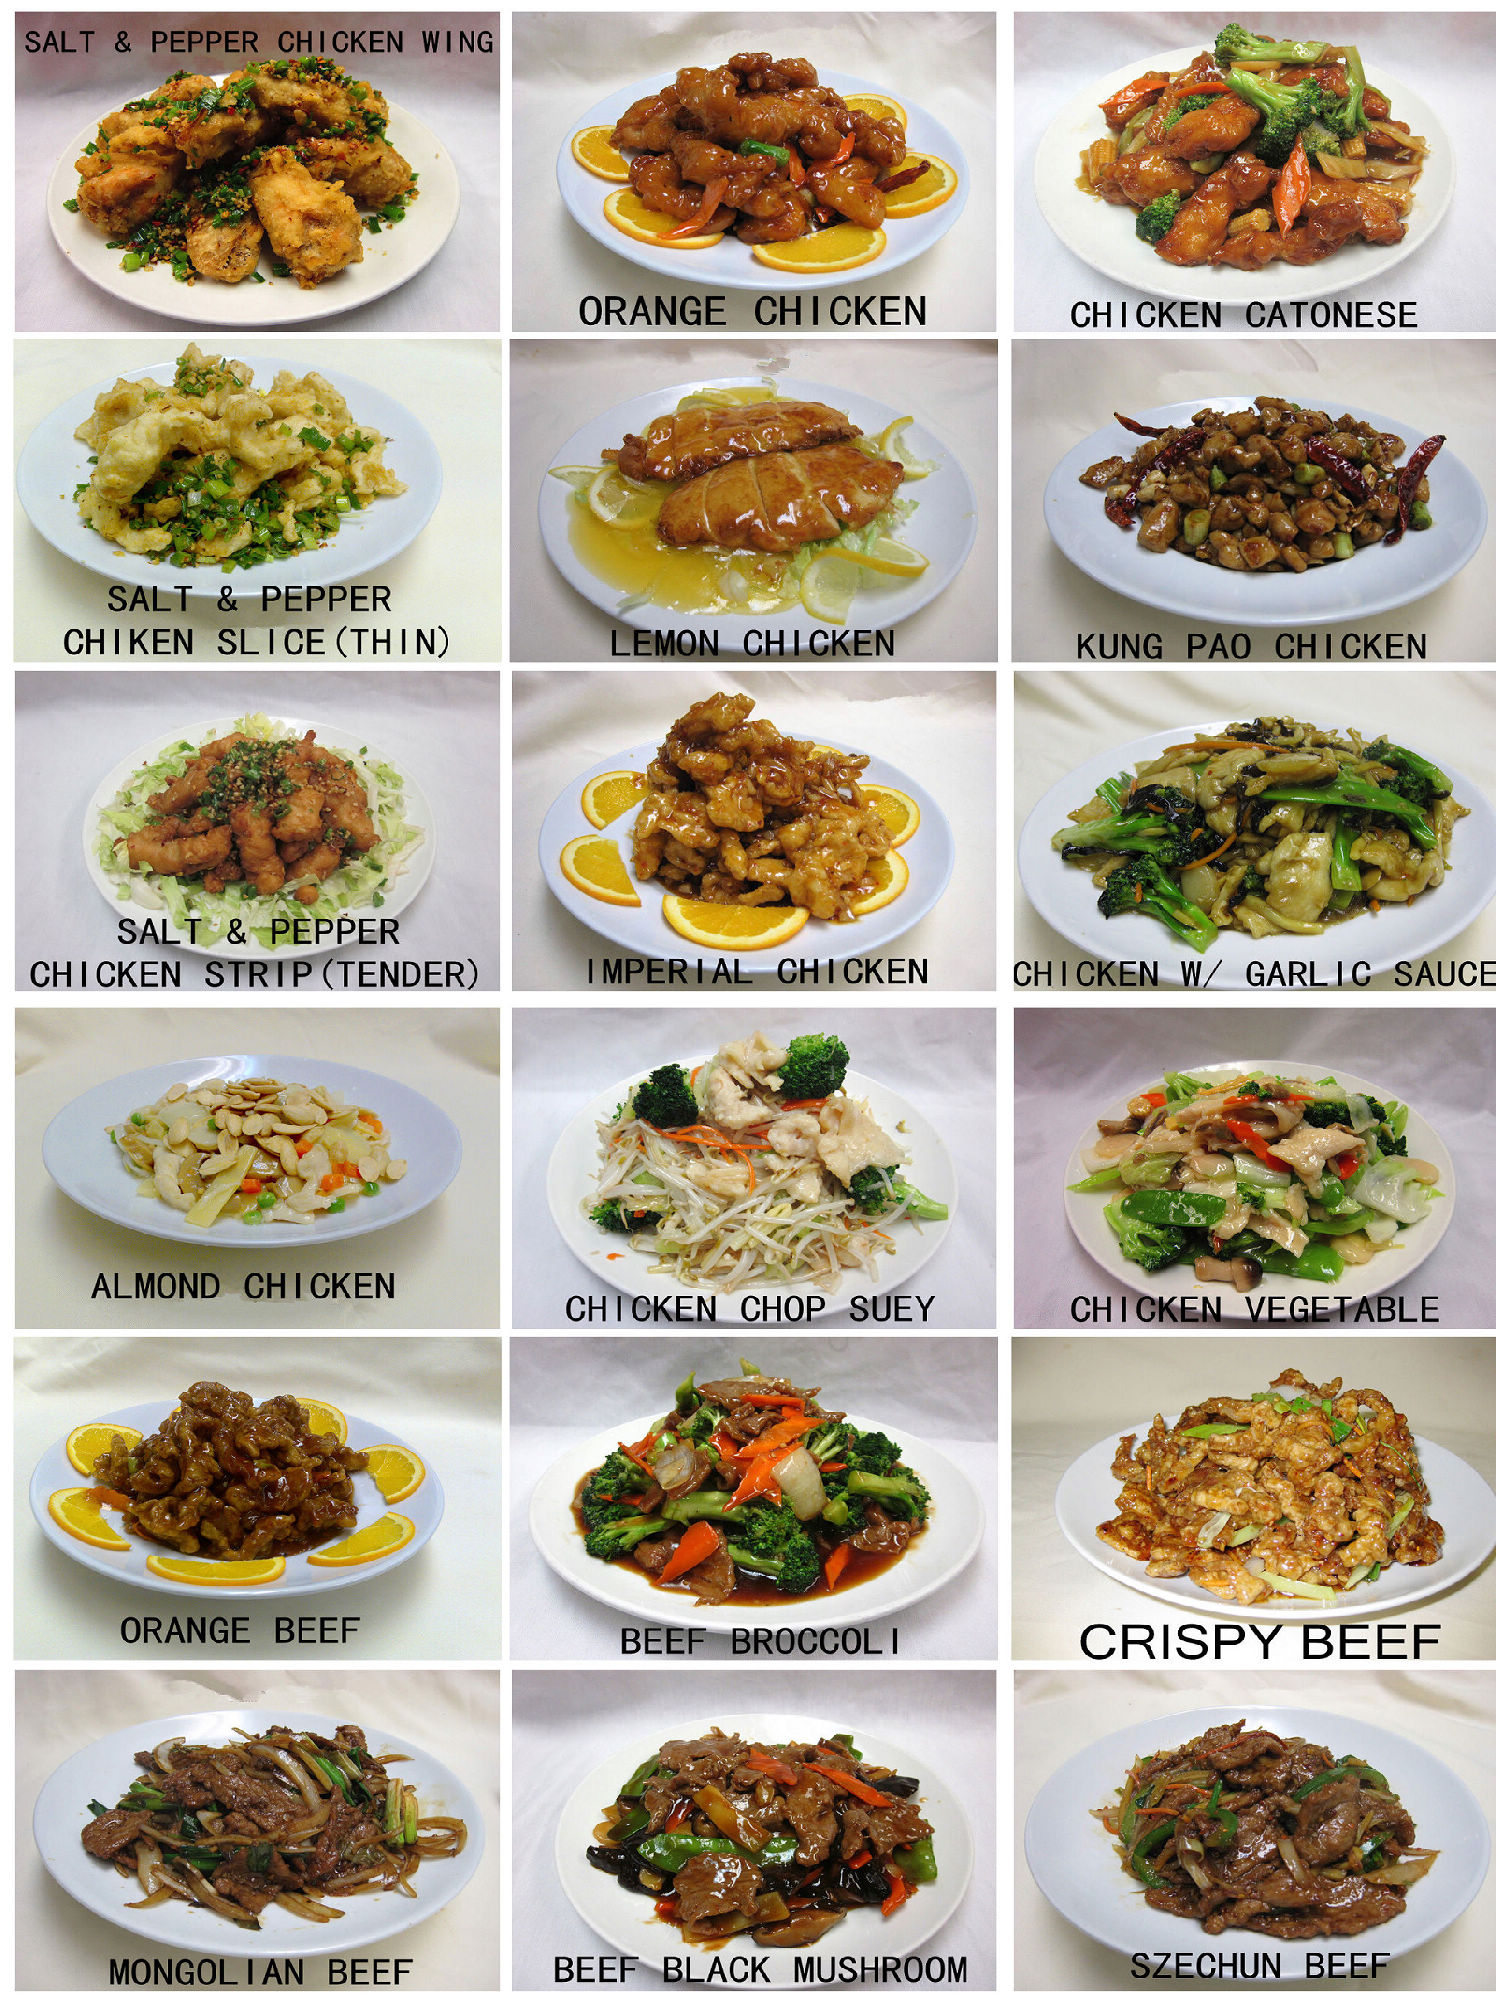 Golden House Chinese Food And Catering San Diego